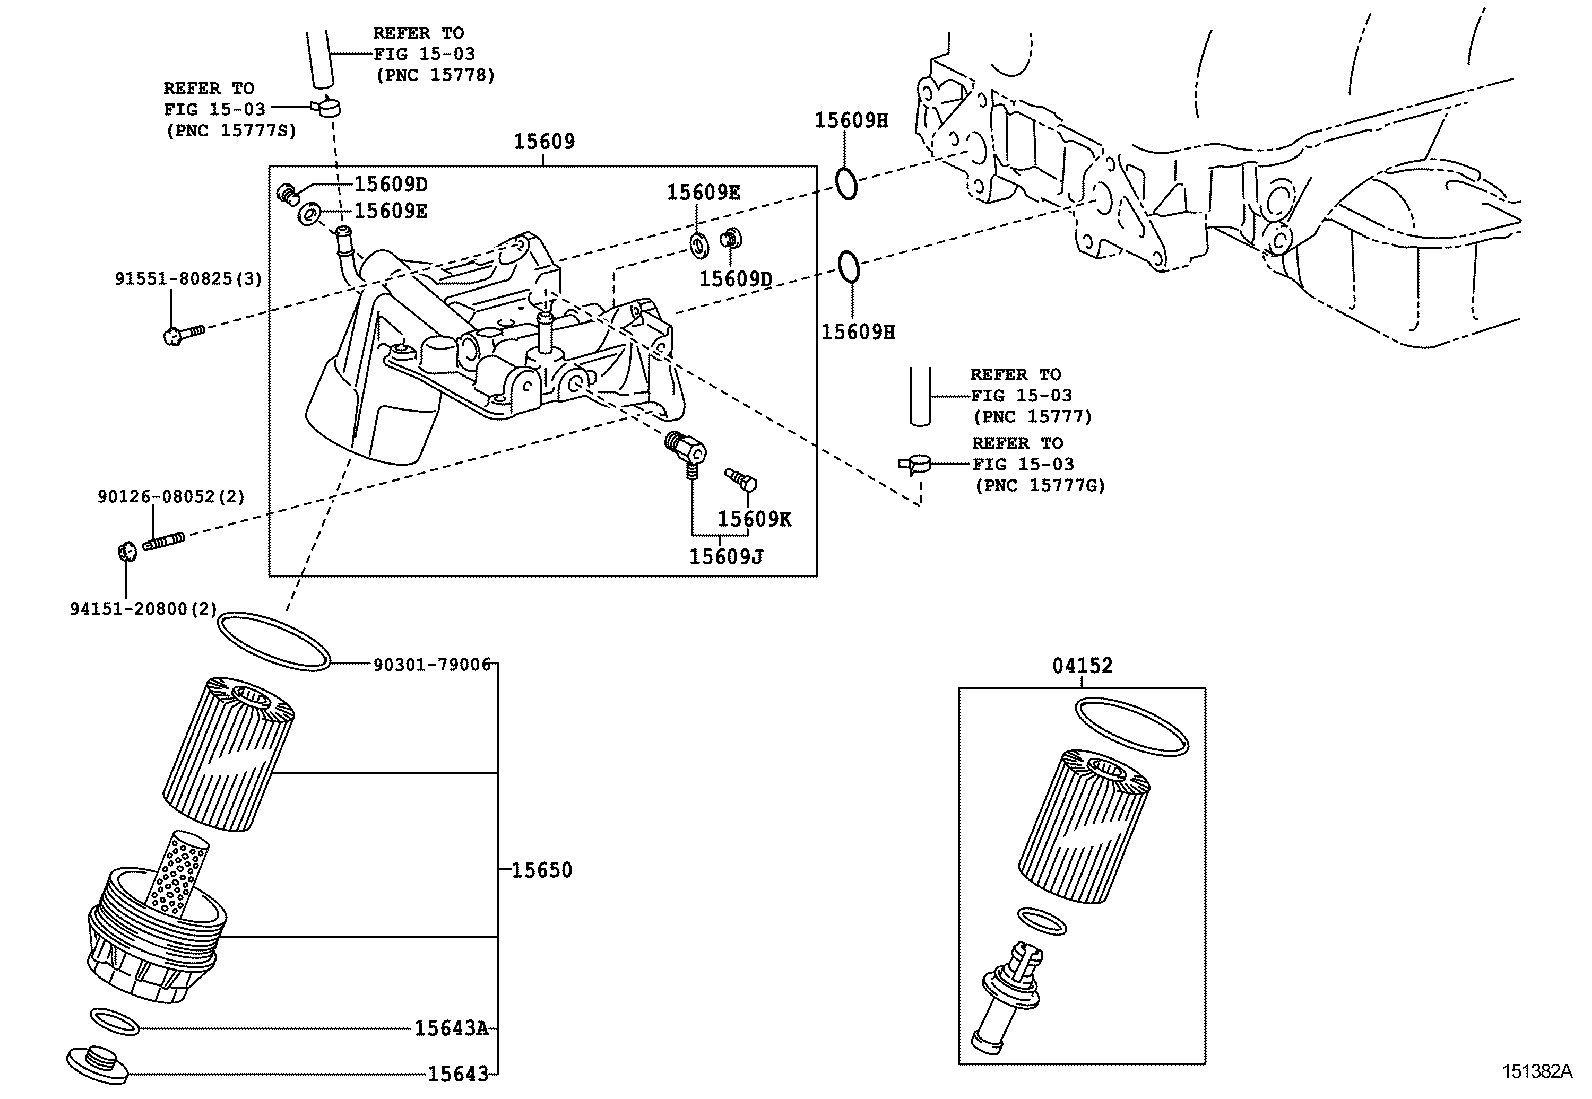 2000 toyota land cruiser engine diagram | forum-ministe wiring diagram ran  - forum-ministe.rolltec-automotive.eu  rolltec-automotive.eu